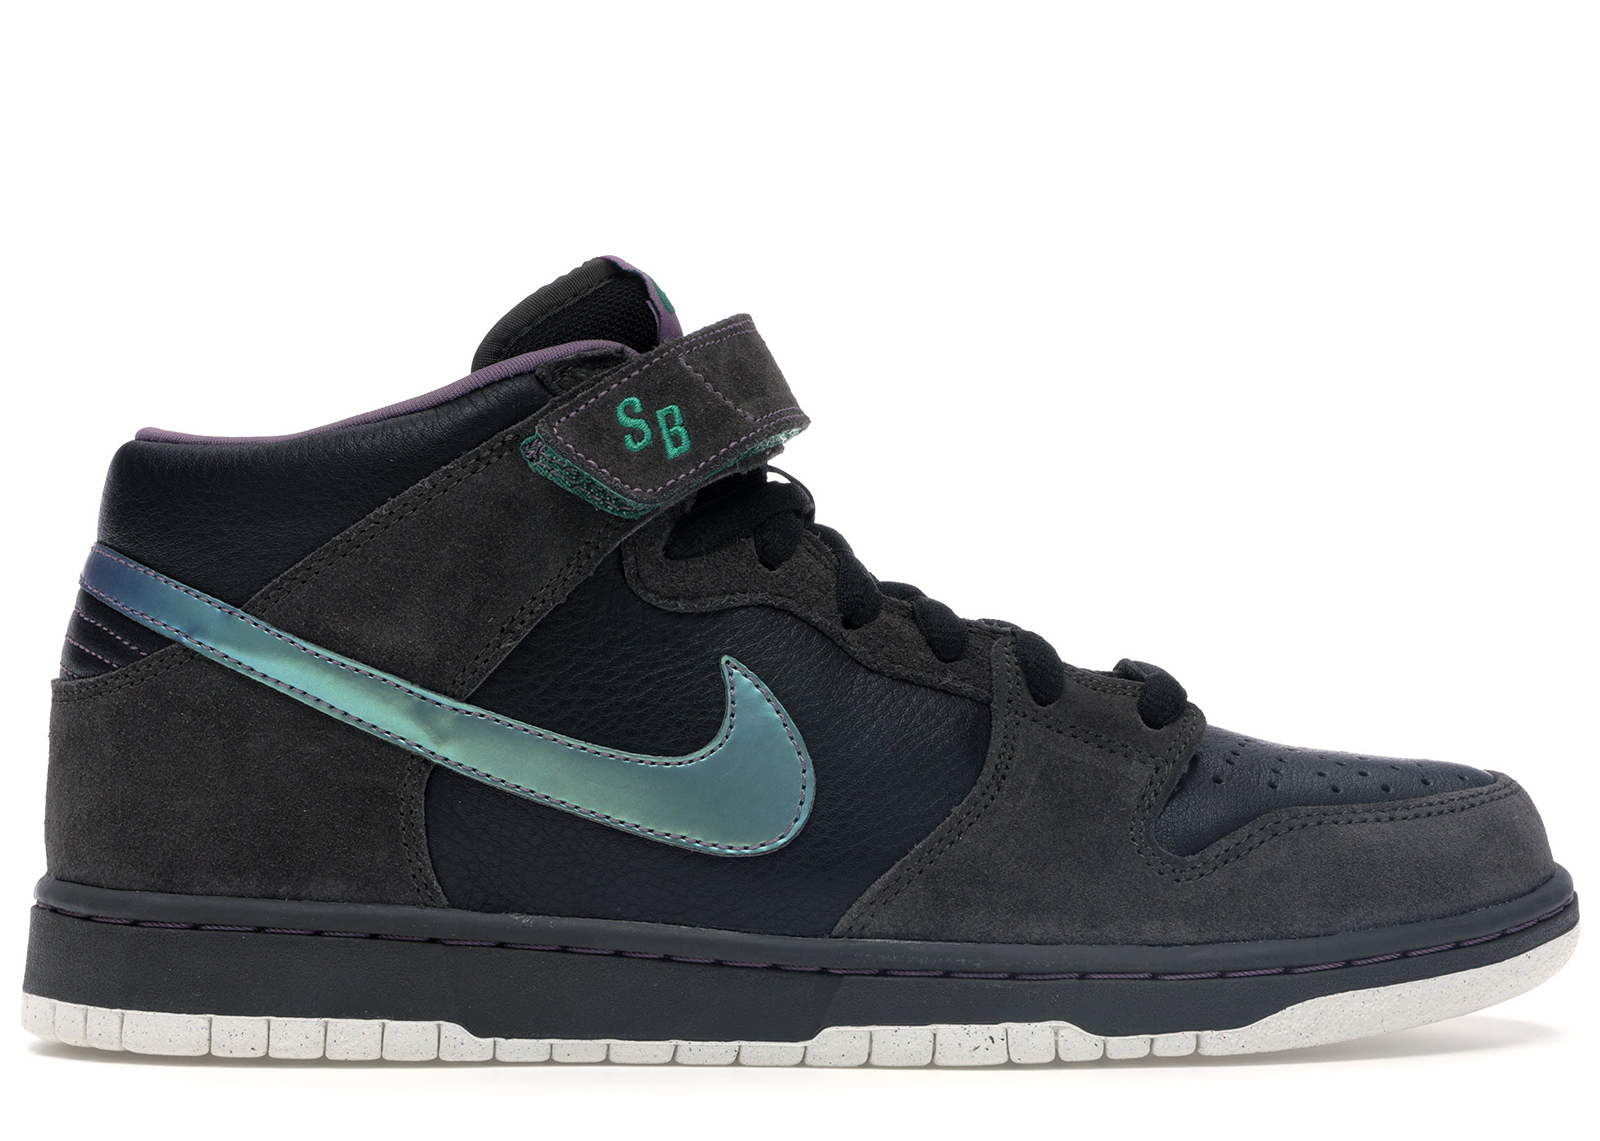 Nike SB Dunk Mid Northern Lights